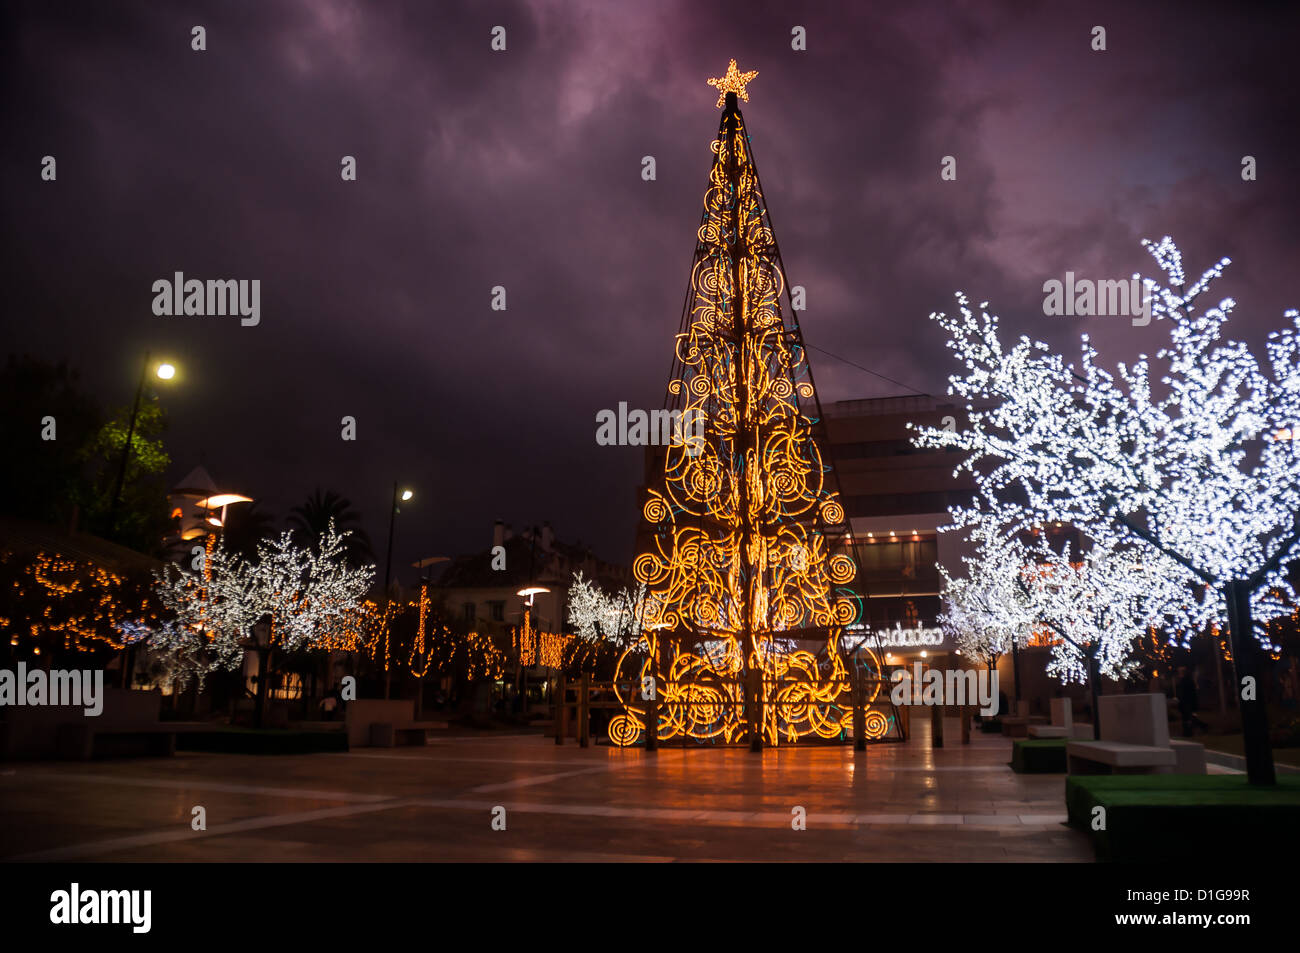 Decorations In Spain Christmas Decorations In Town Square In Fuengirola Spain Stock